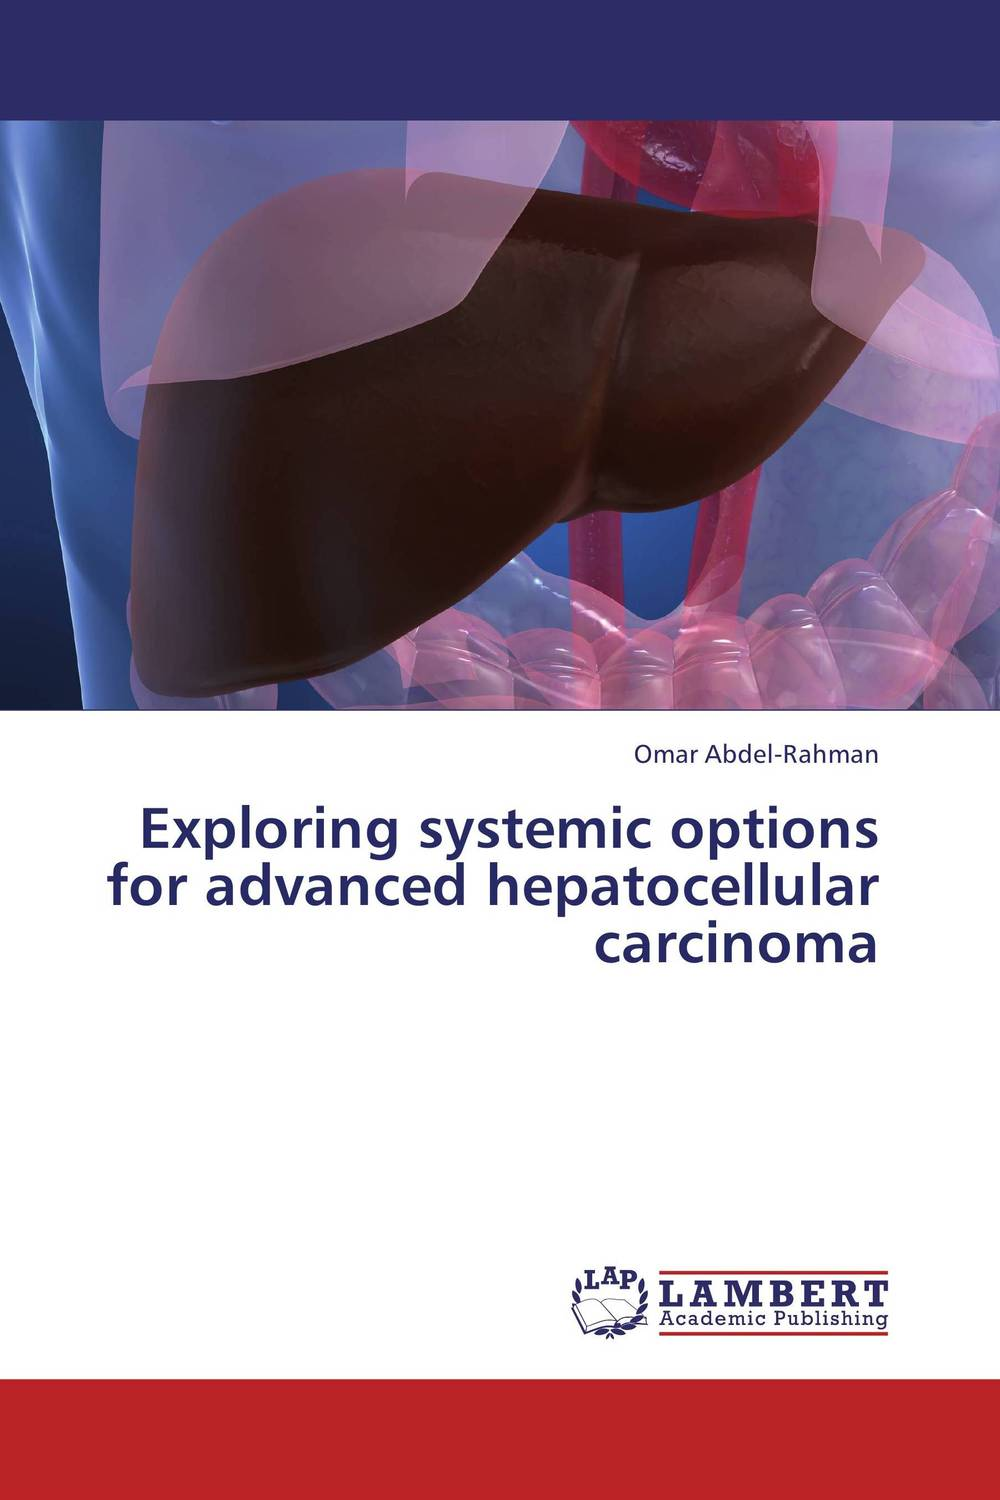 Exploring systemic options for advanced hepatocellular carcinoma